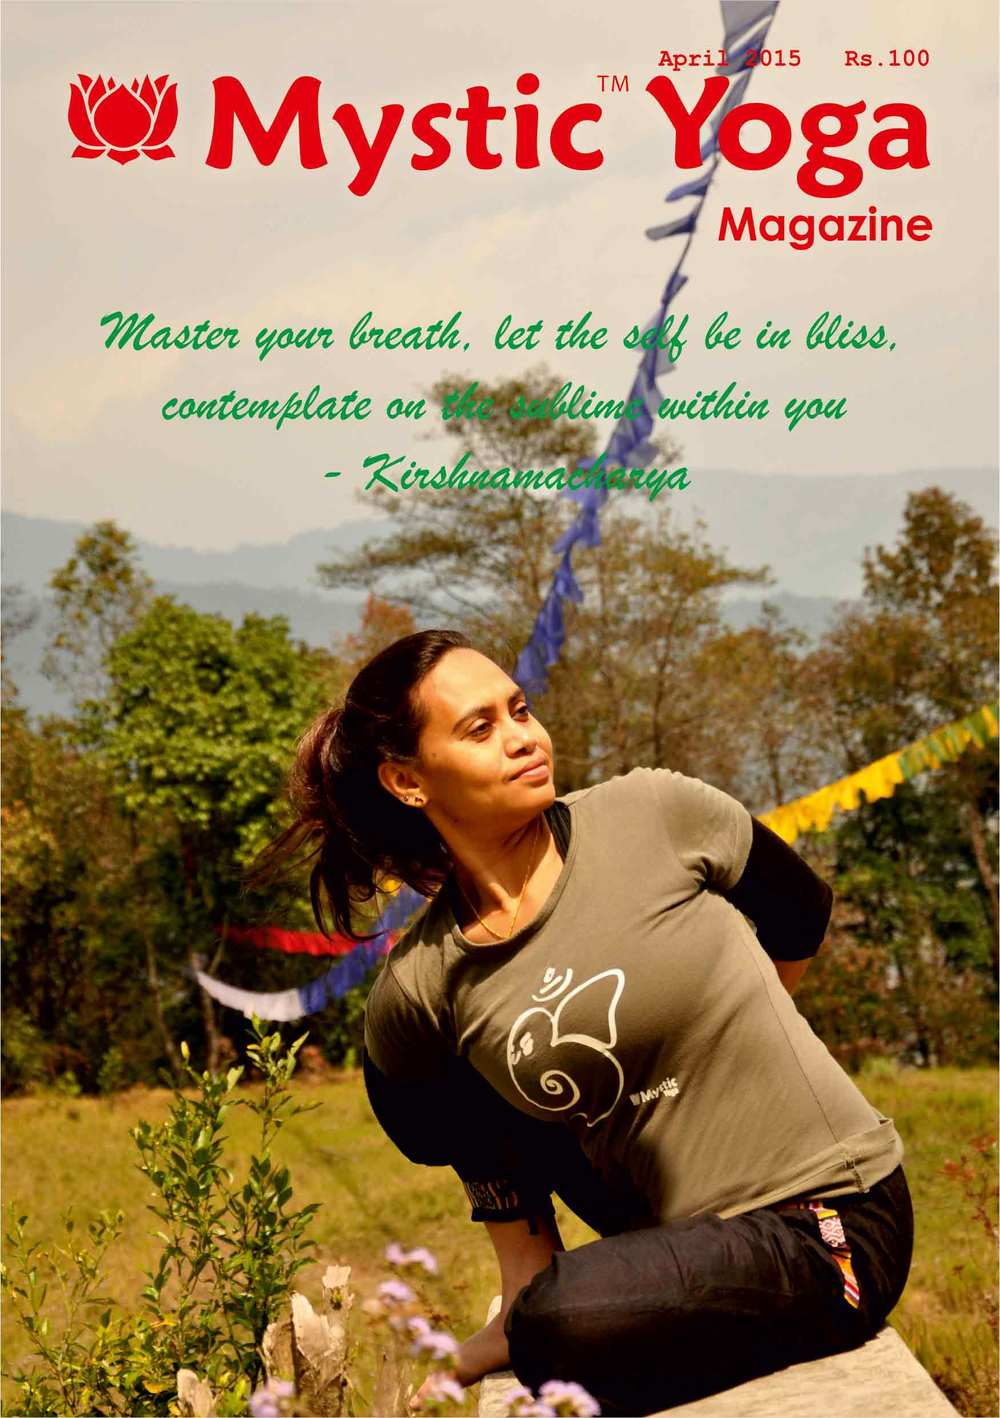 Mystic Yoga Magazine - April 2015